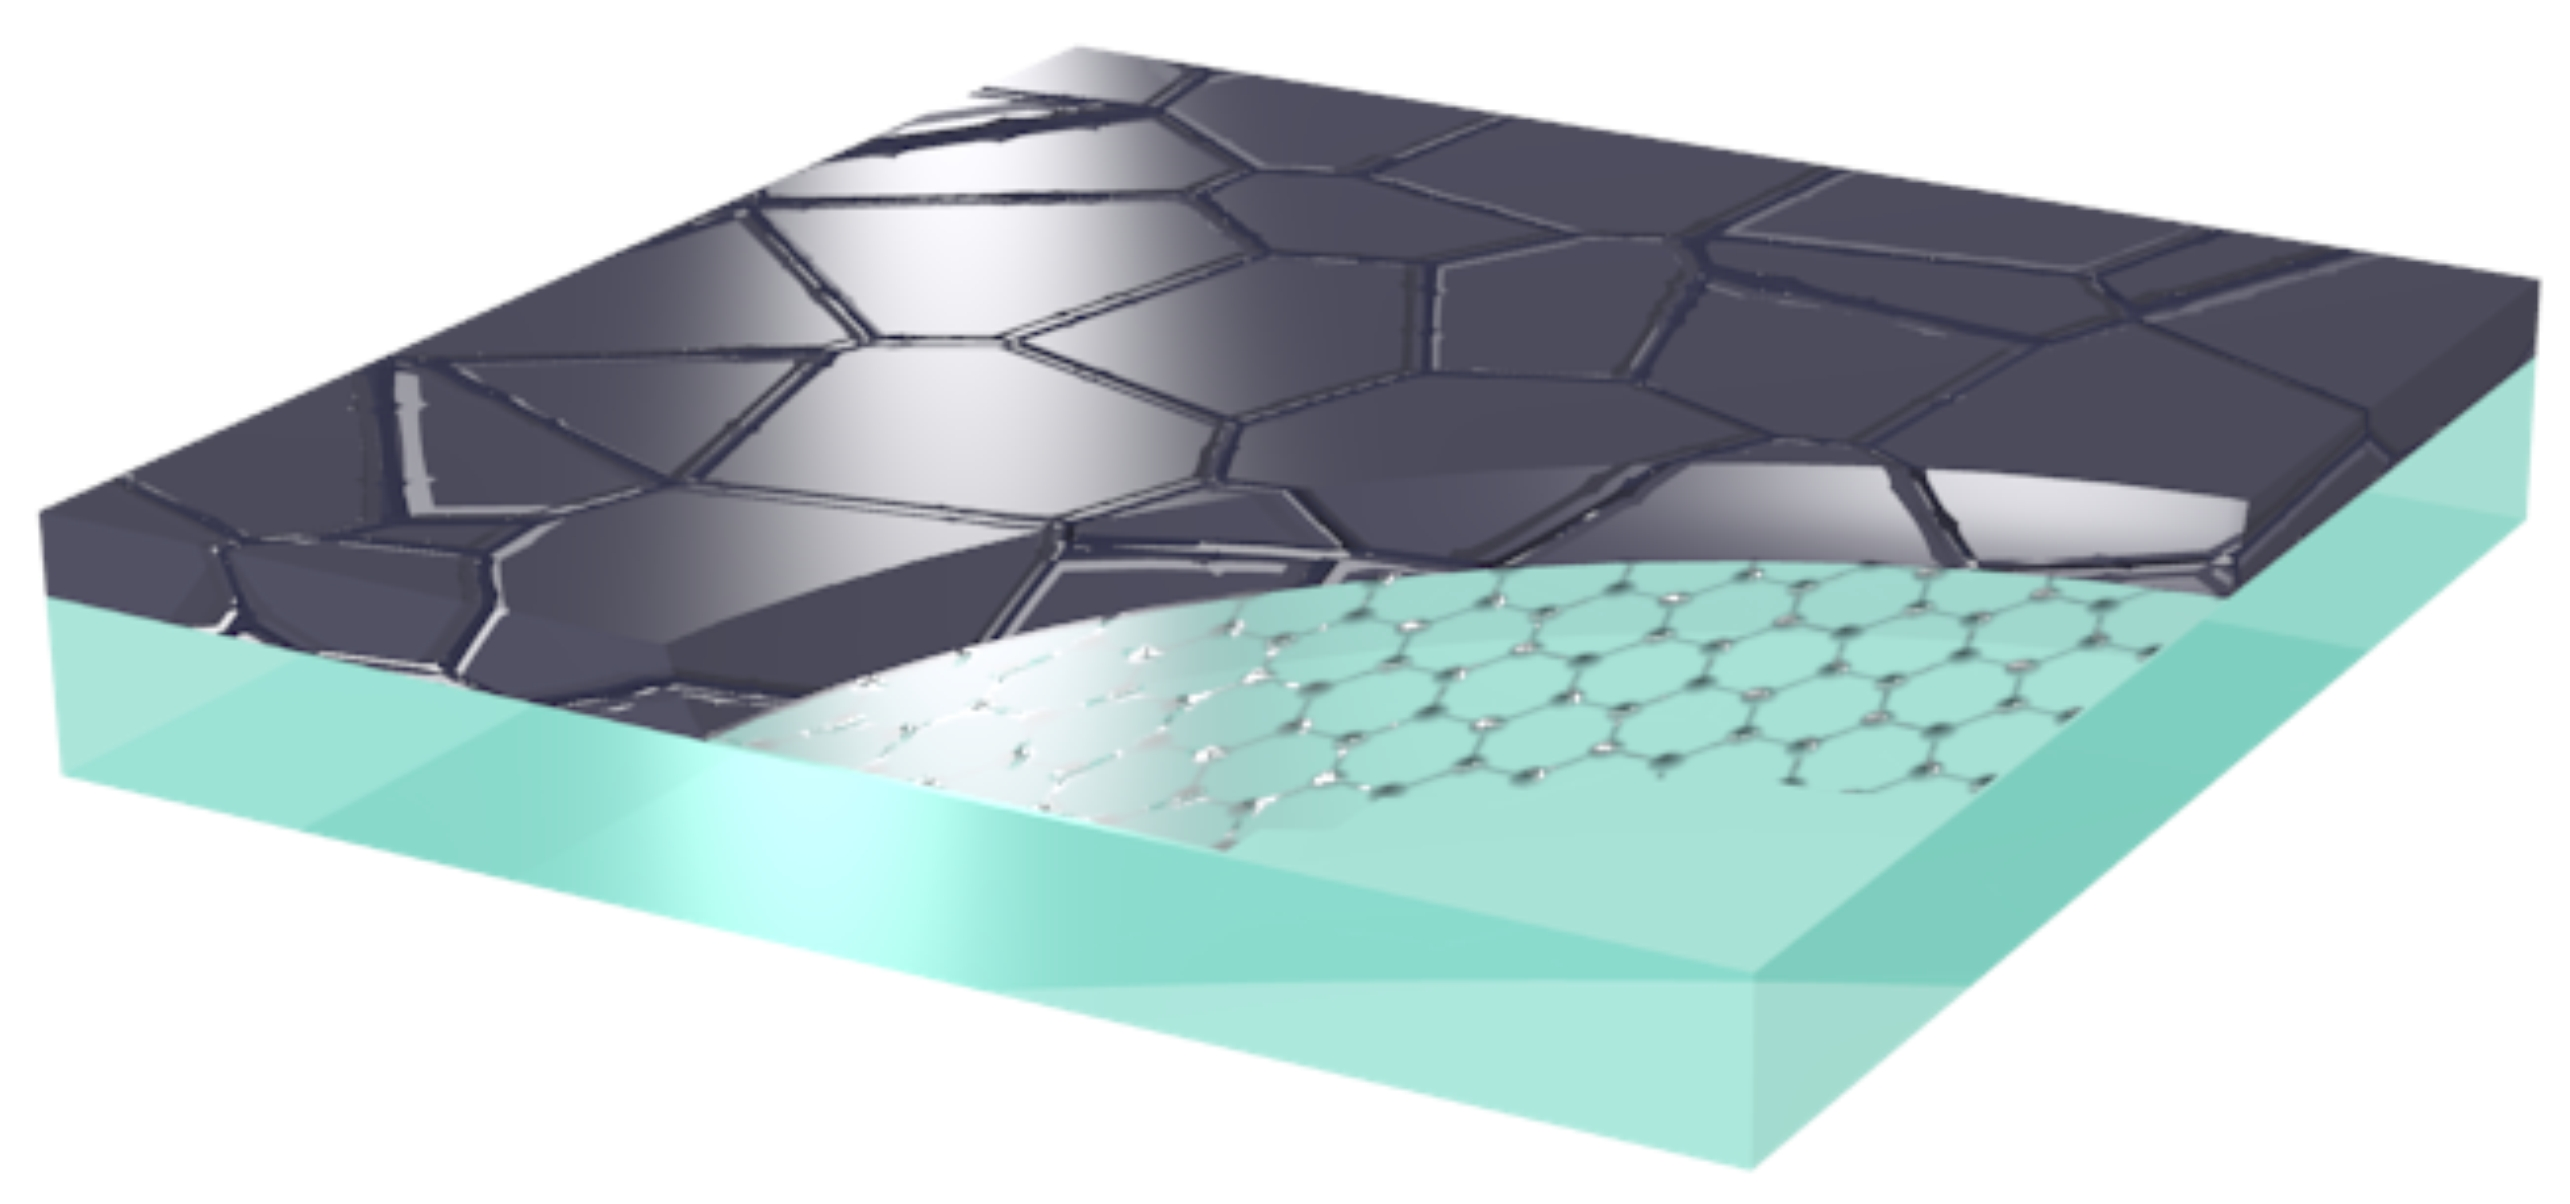 Protection Of Glass From Corrosion With Graphene